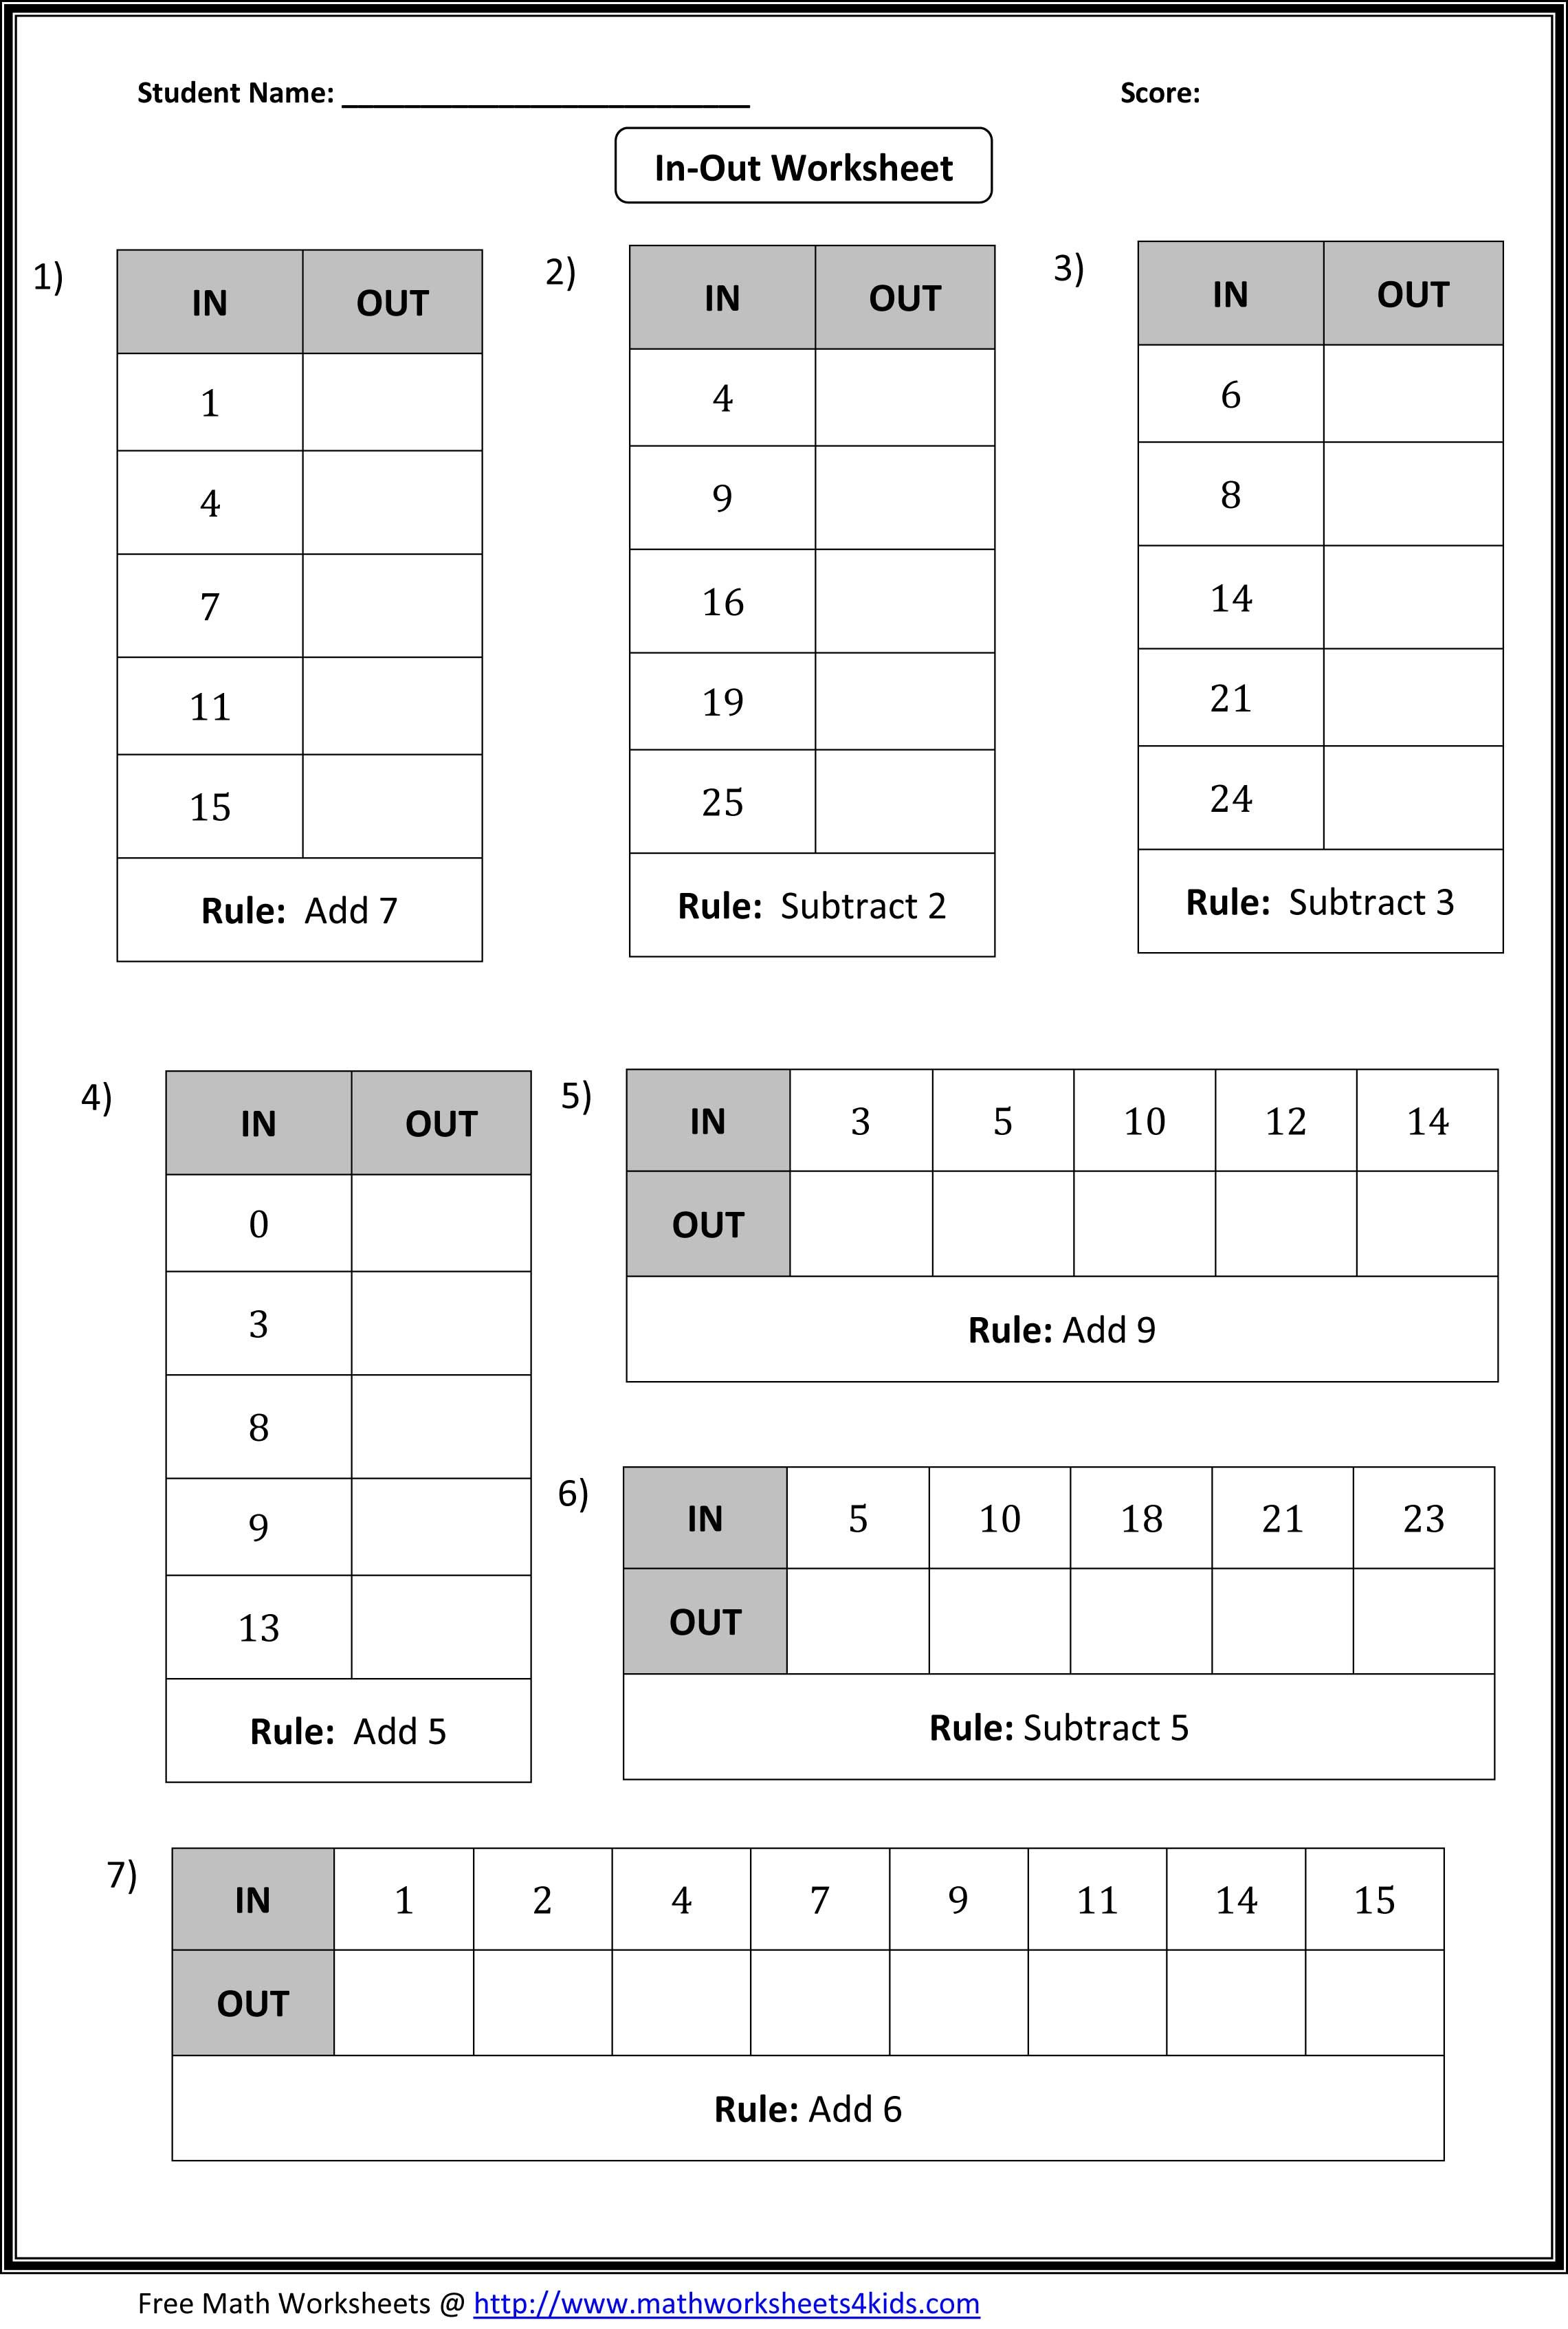 small resolution of In and Out Worksheets   Printable math worksheets